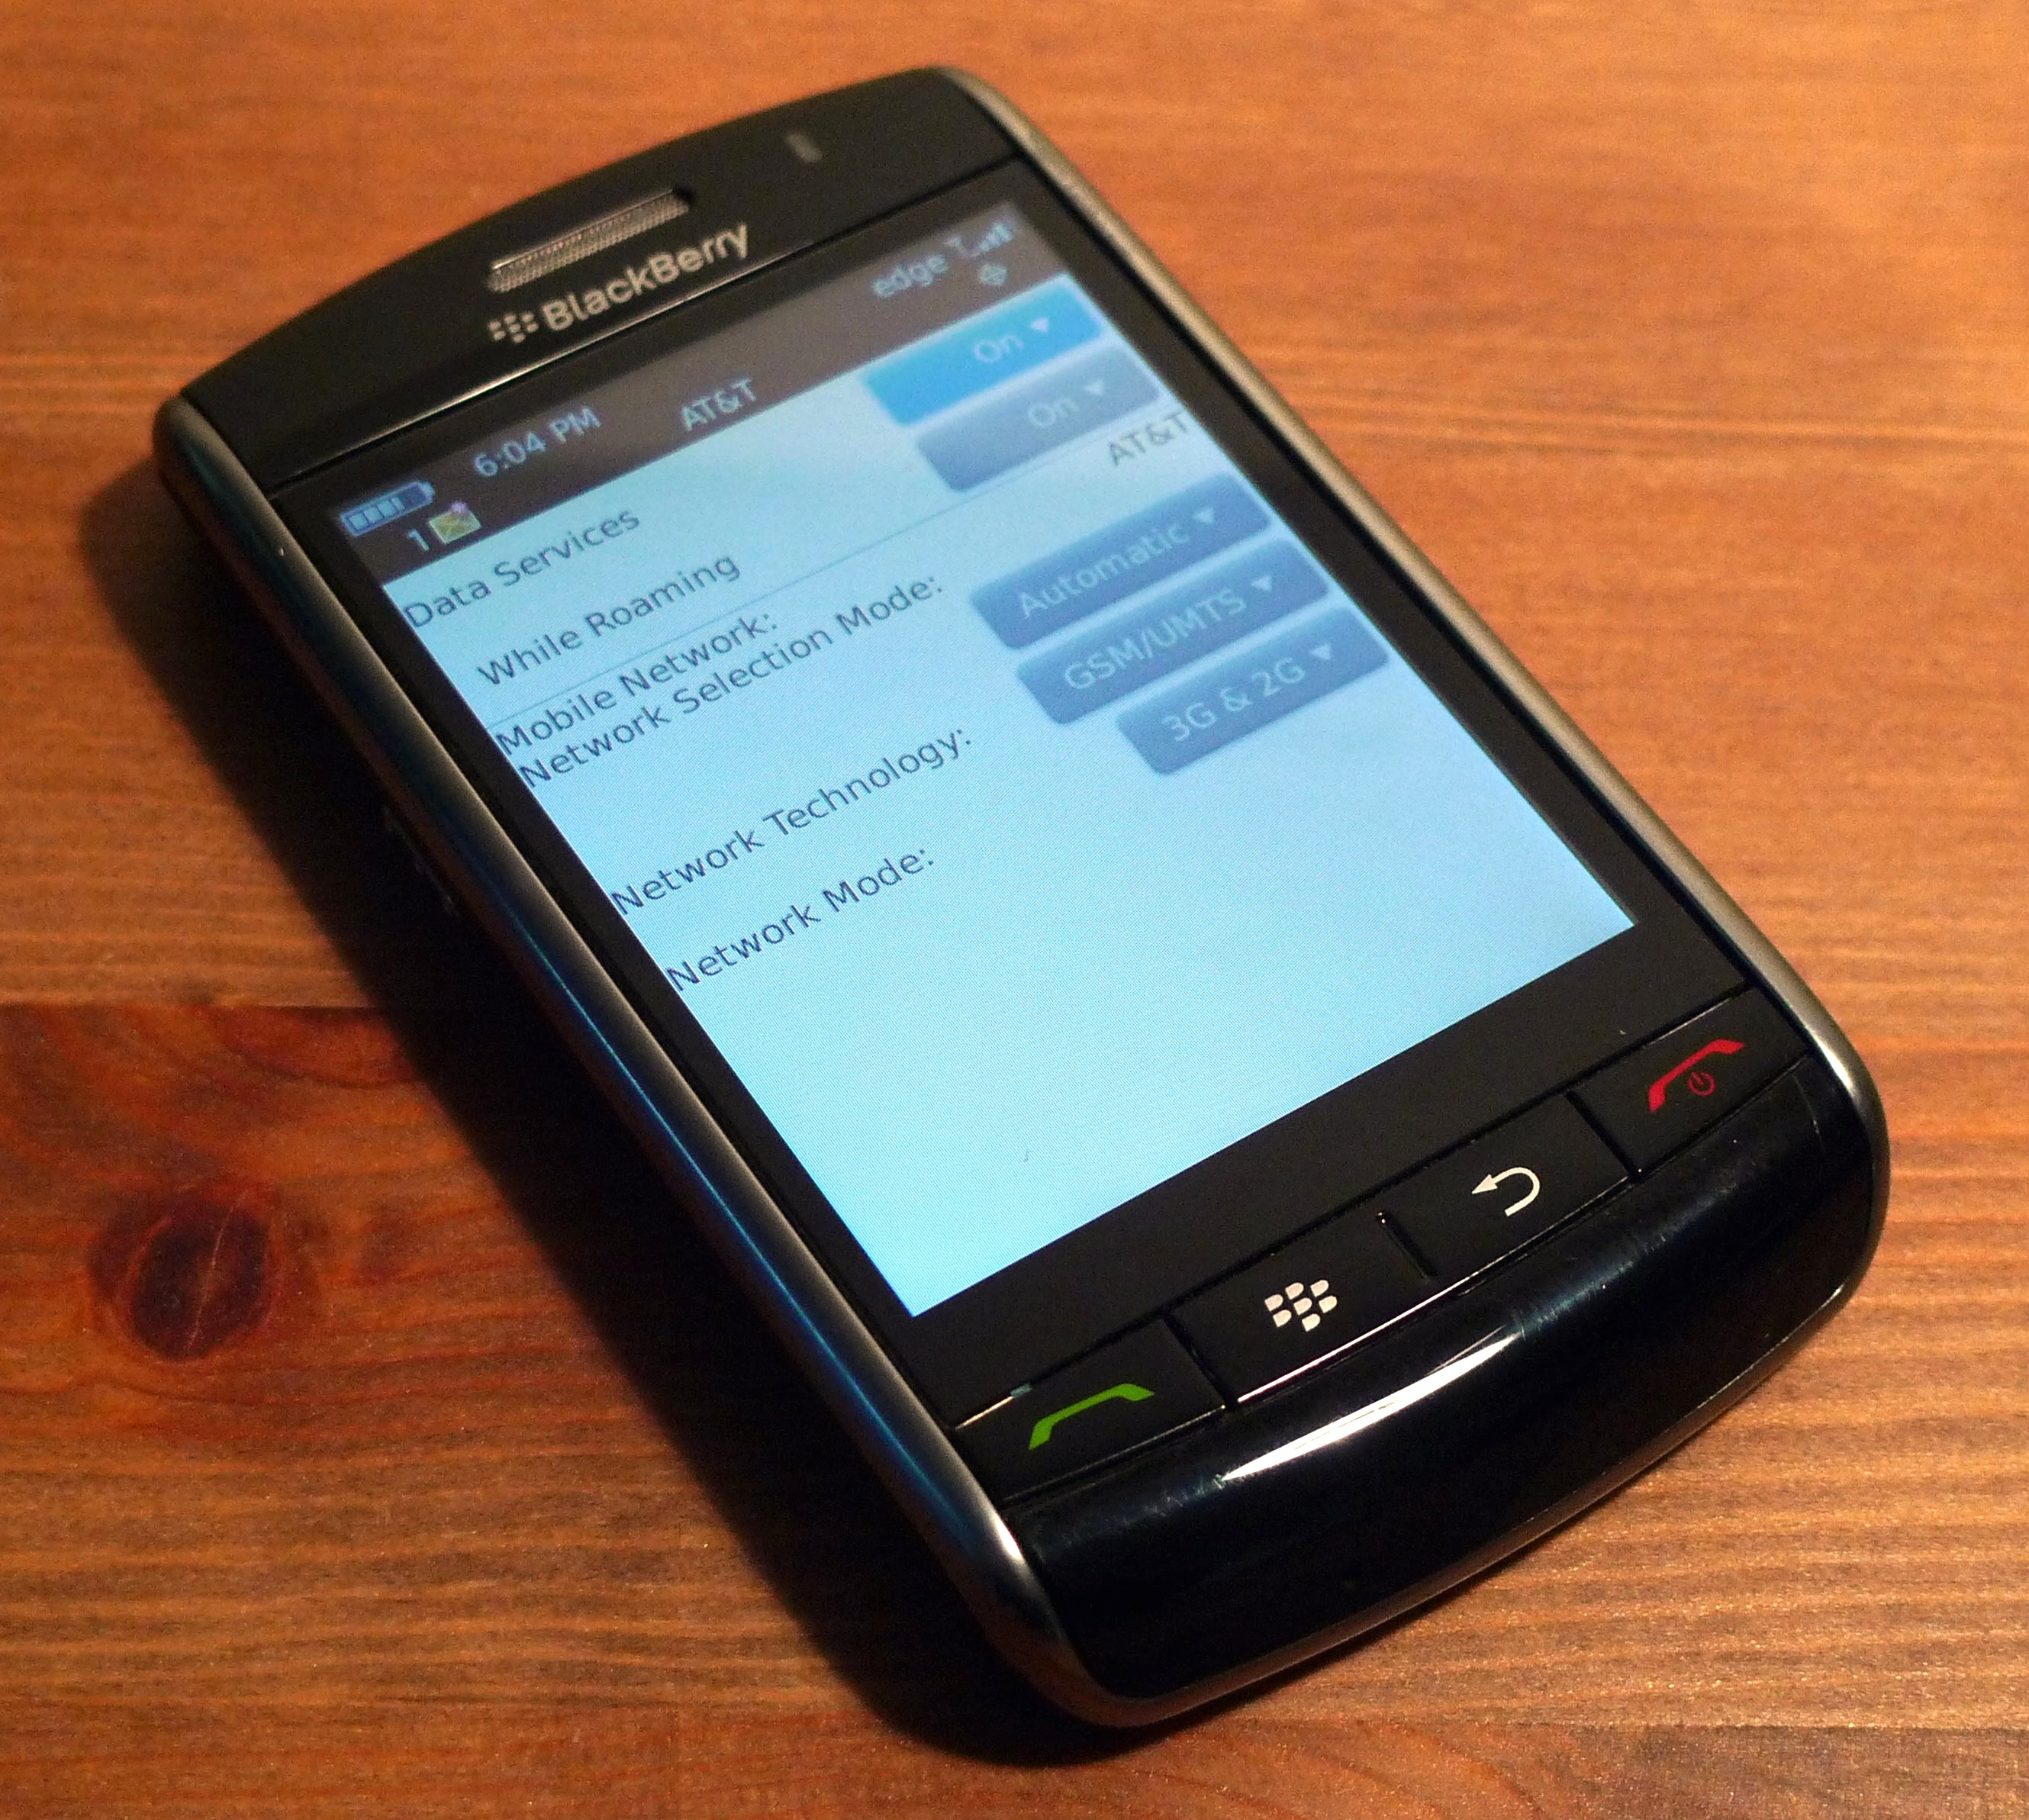 Blackberry z3 flash file download free